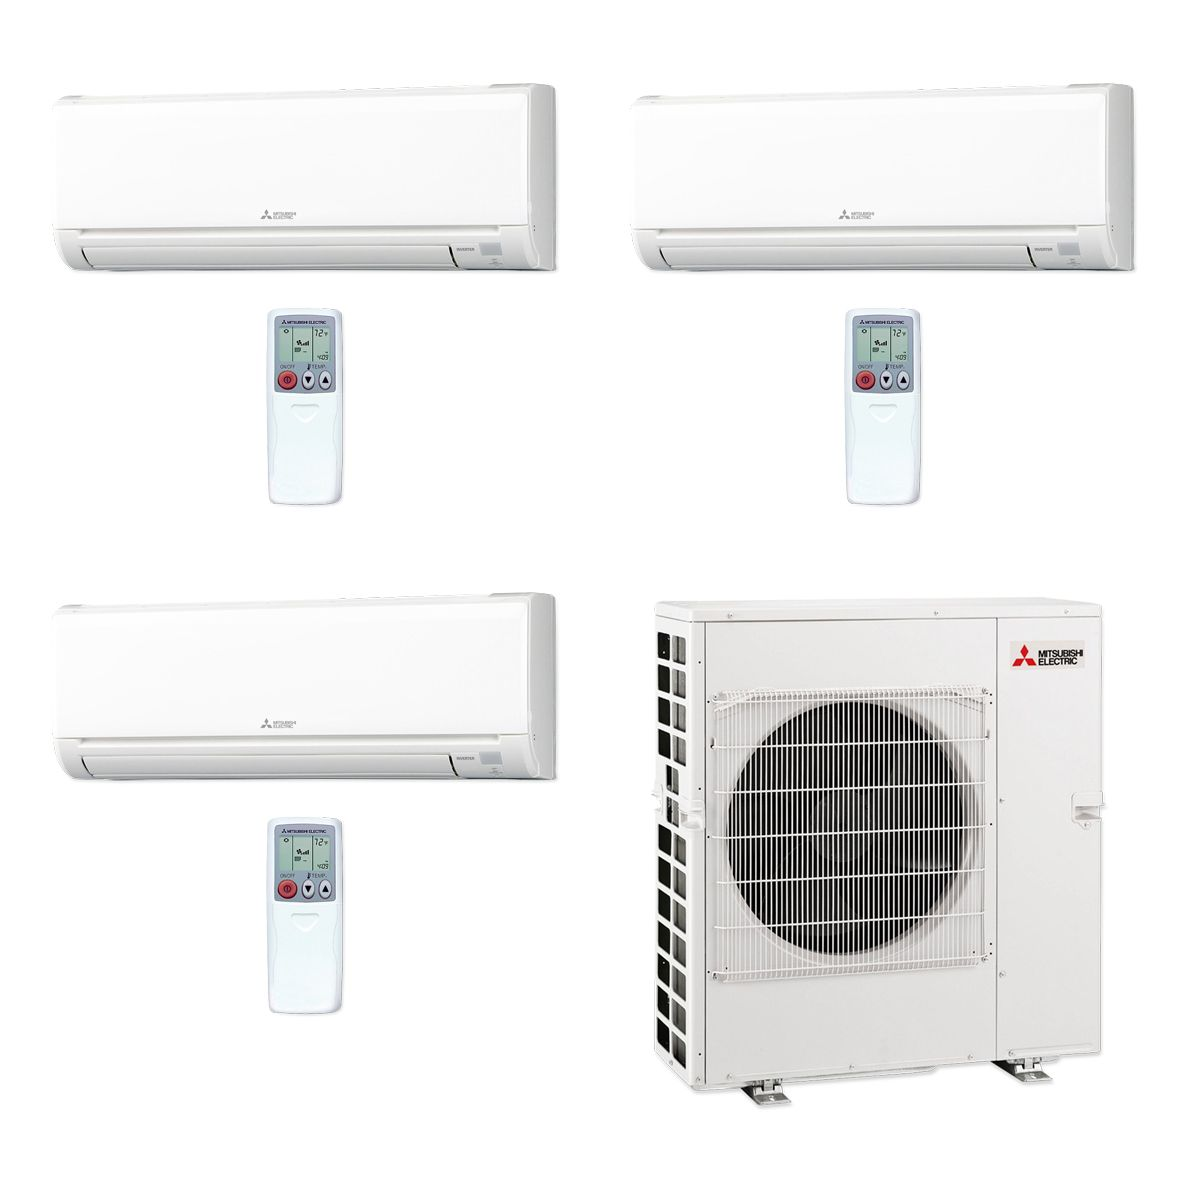 Mitsubishi Mxz5c42na 3ws 35 42 000 Btu Mr Slim Tri Zone Ductless Mini Split Air Conditioner Heat Pump 208 230v 12 15